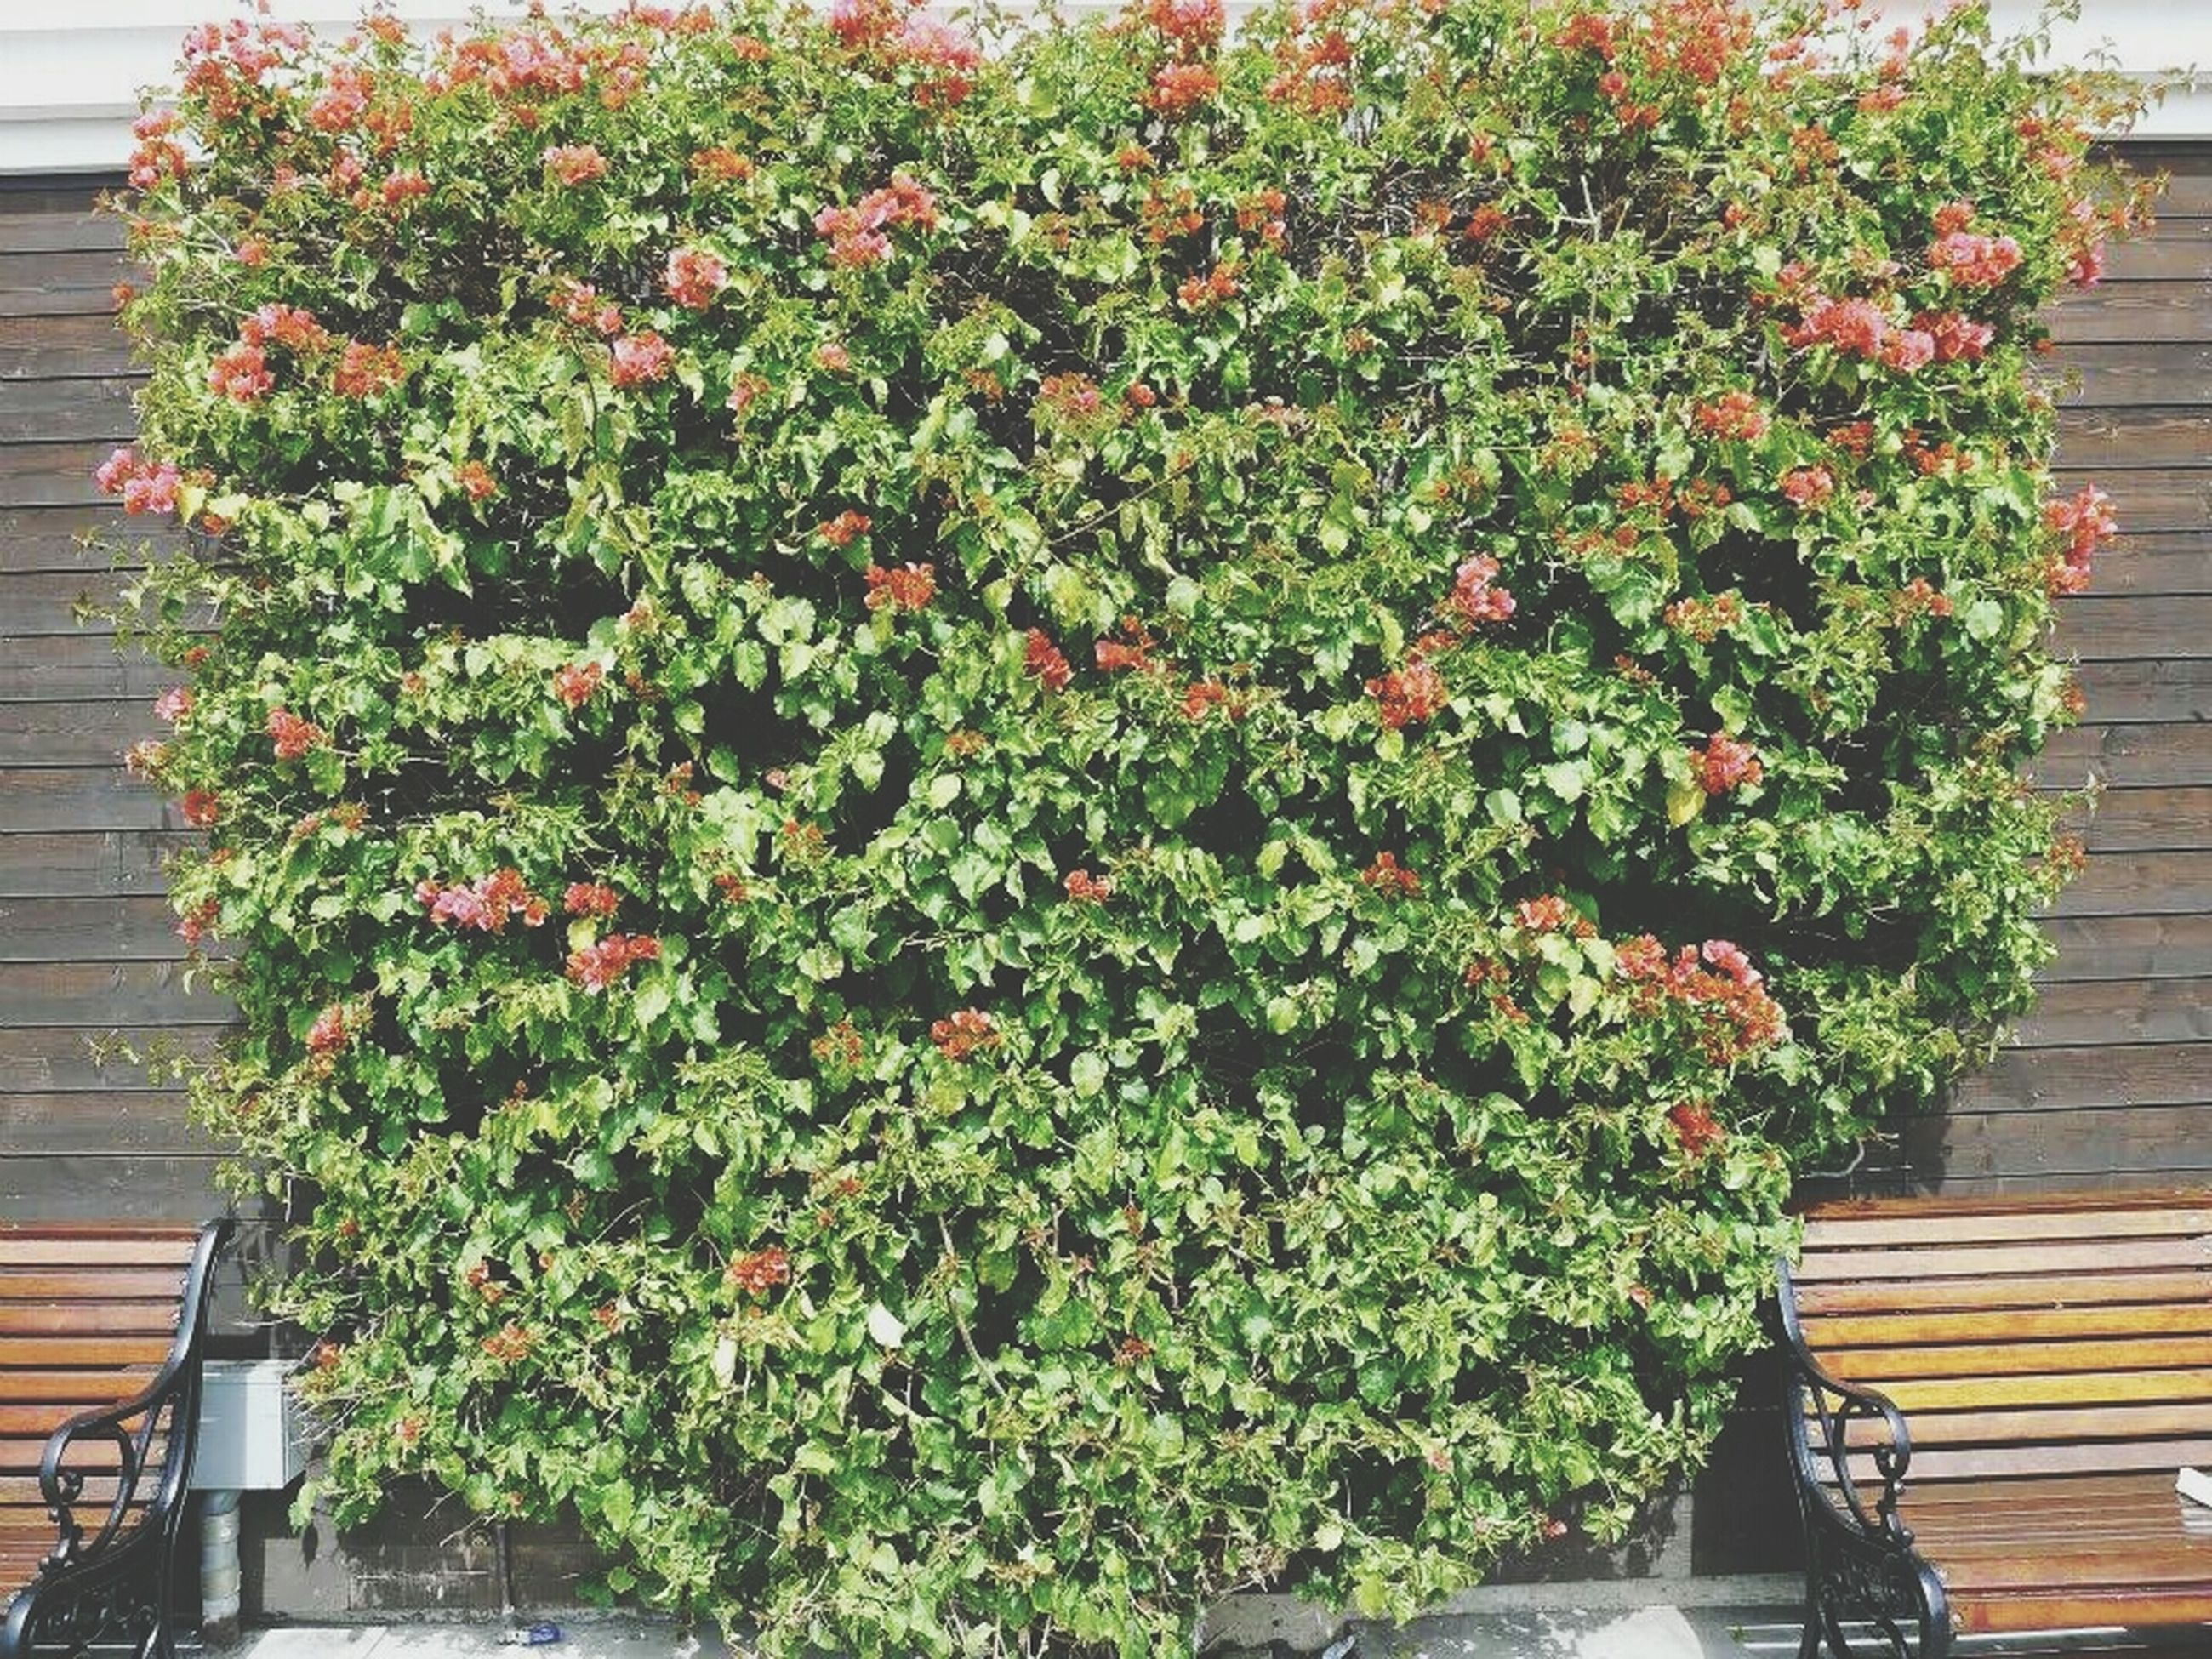 growth, plant, flower, potted plant, leaf, green color, freshness, nature, front or back yard, wood - material, flower pot, wall - building feature, beauty in nature, fragility, growing, outdoors, day, house, no people, red